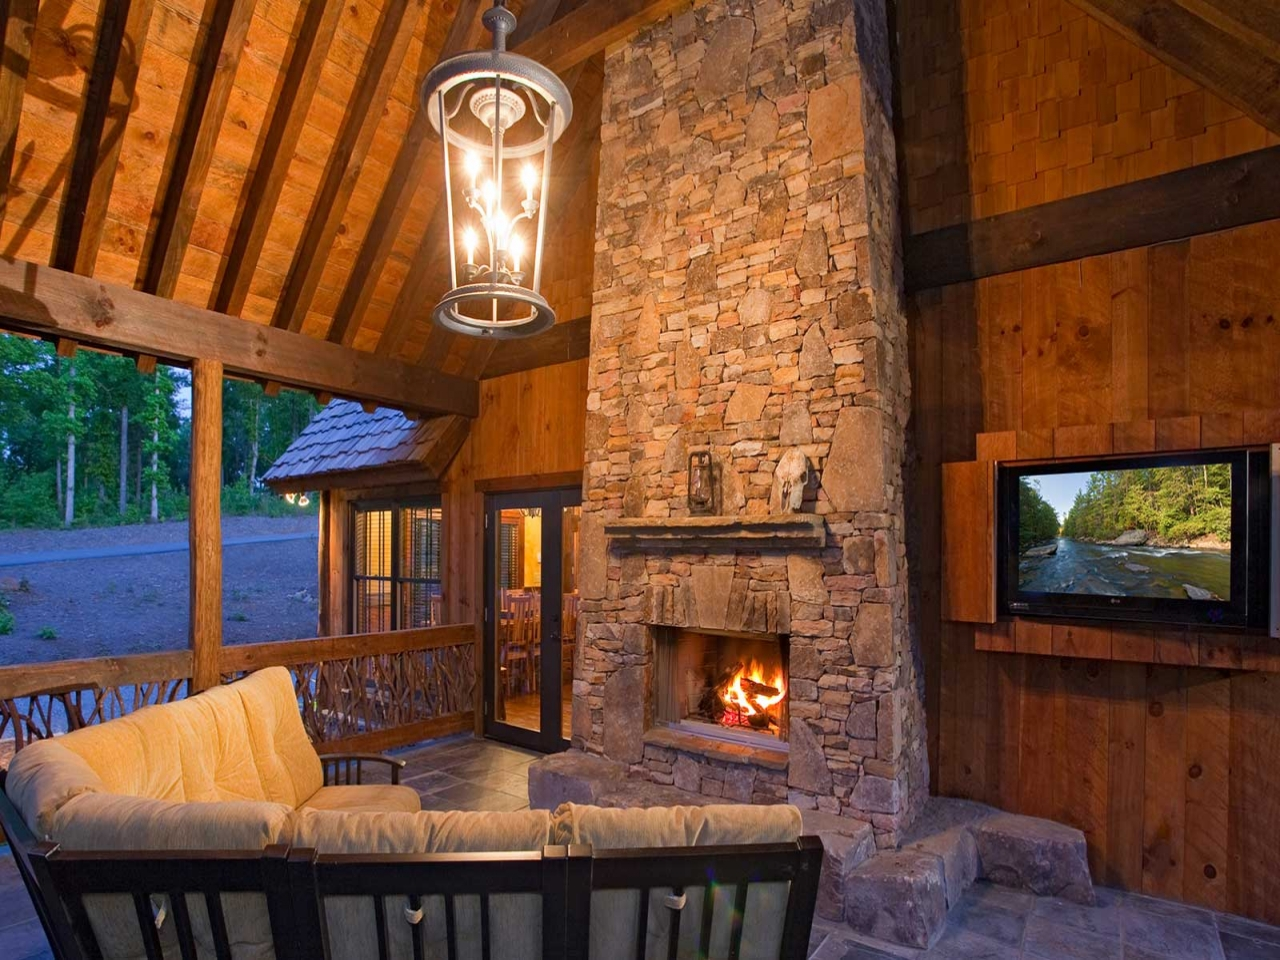 Smoky Mountain Luxury Cabin Rentals Luxury Mountain Cabin